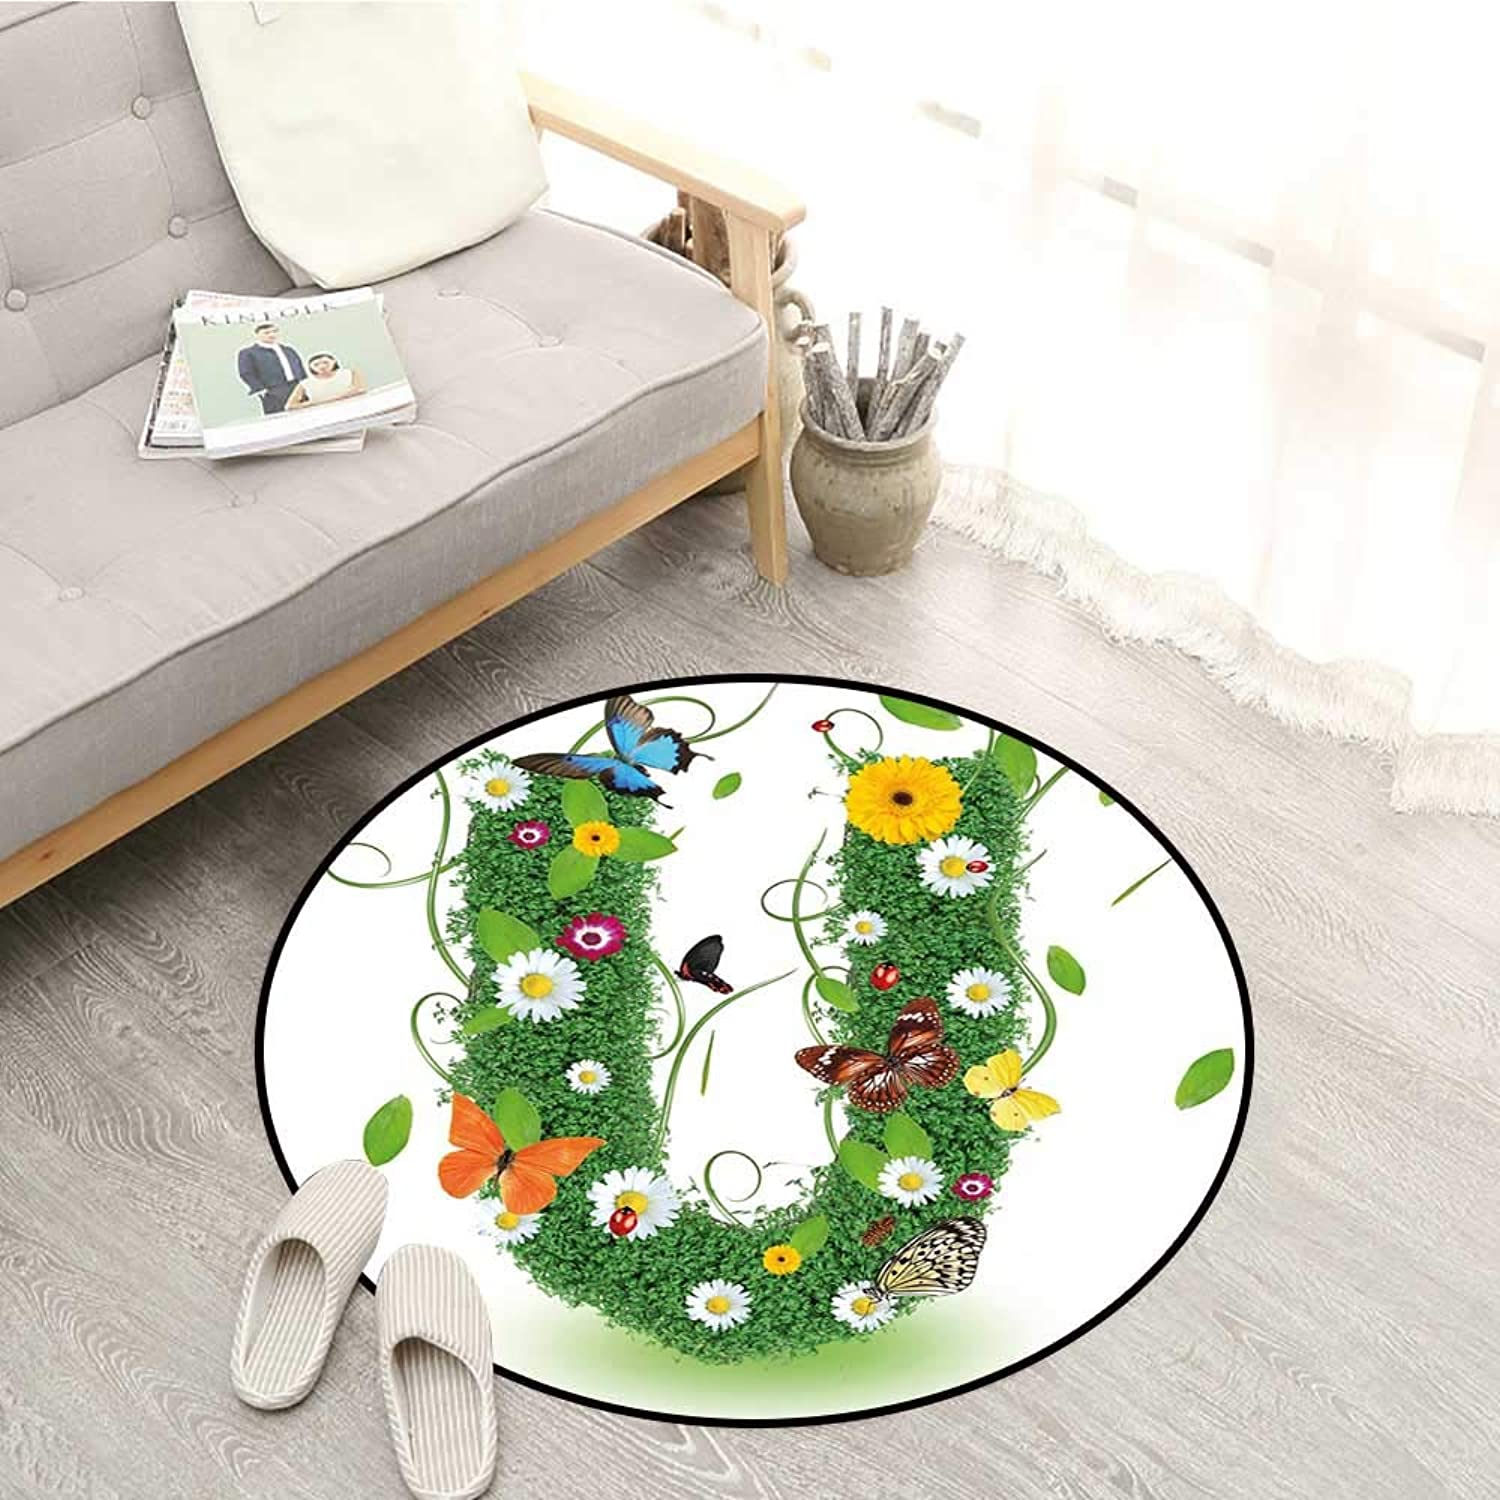 Letter U Kids Rugs Capitalized U with Forest color Scheme Plants Wildflower Butterflies Design Sofa Coffee Table Mat 4'3  Green Multicolor